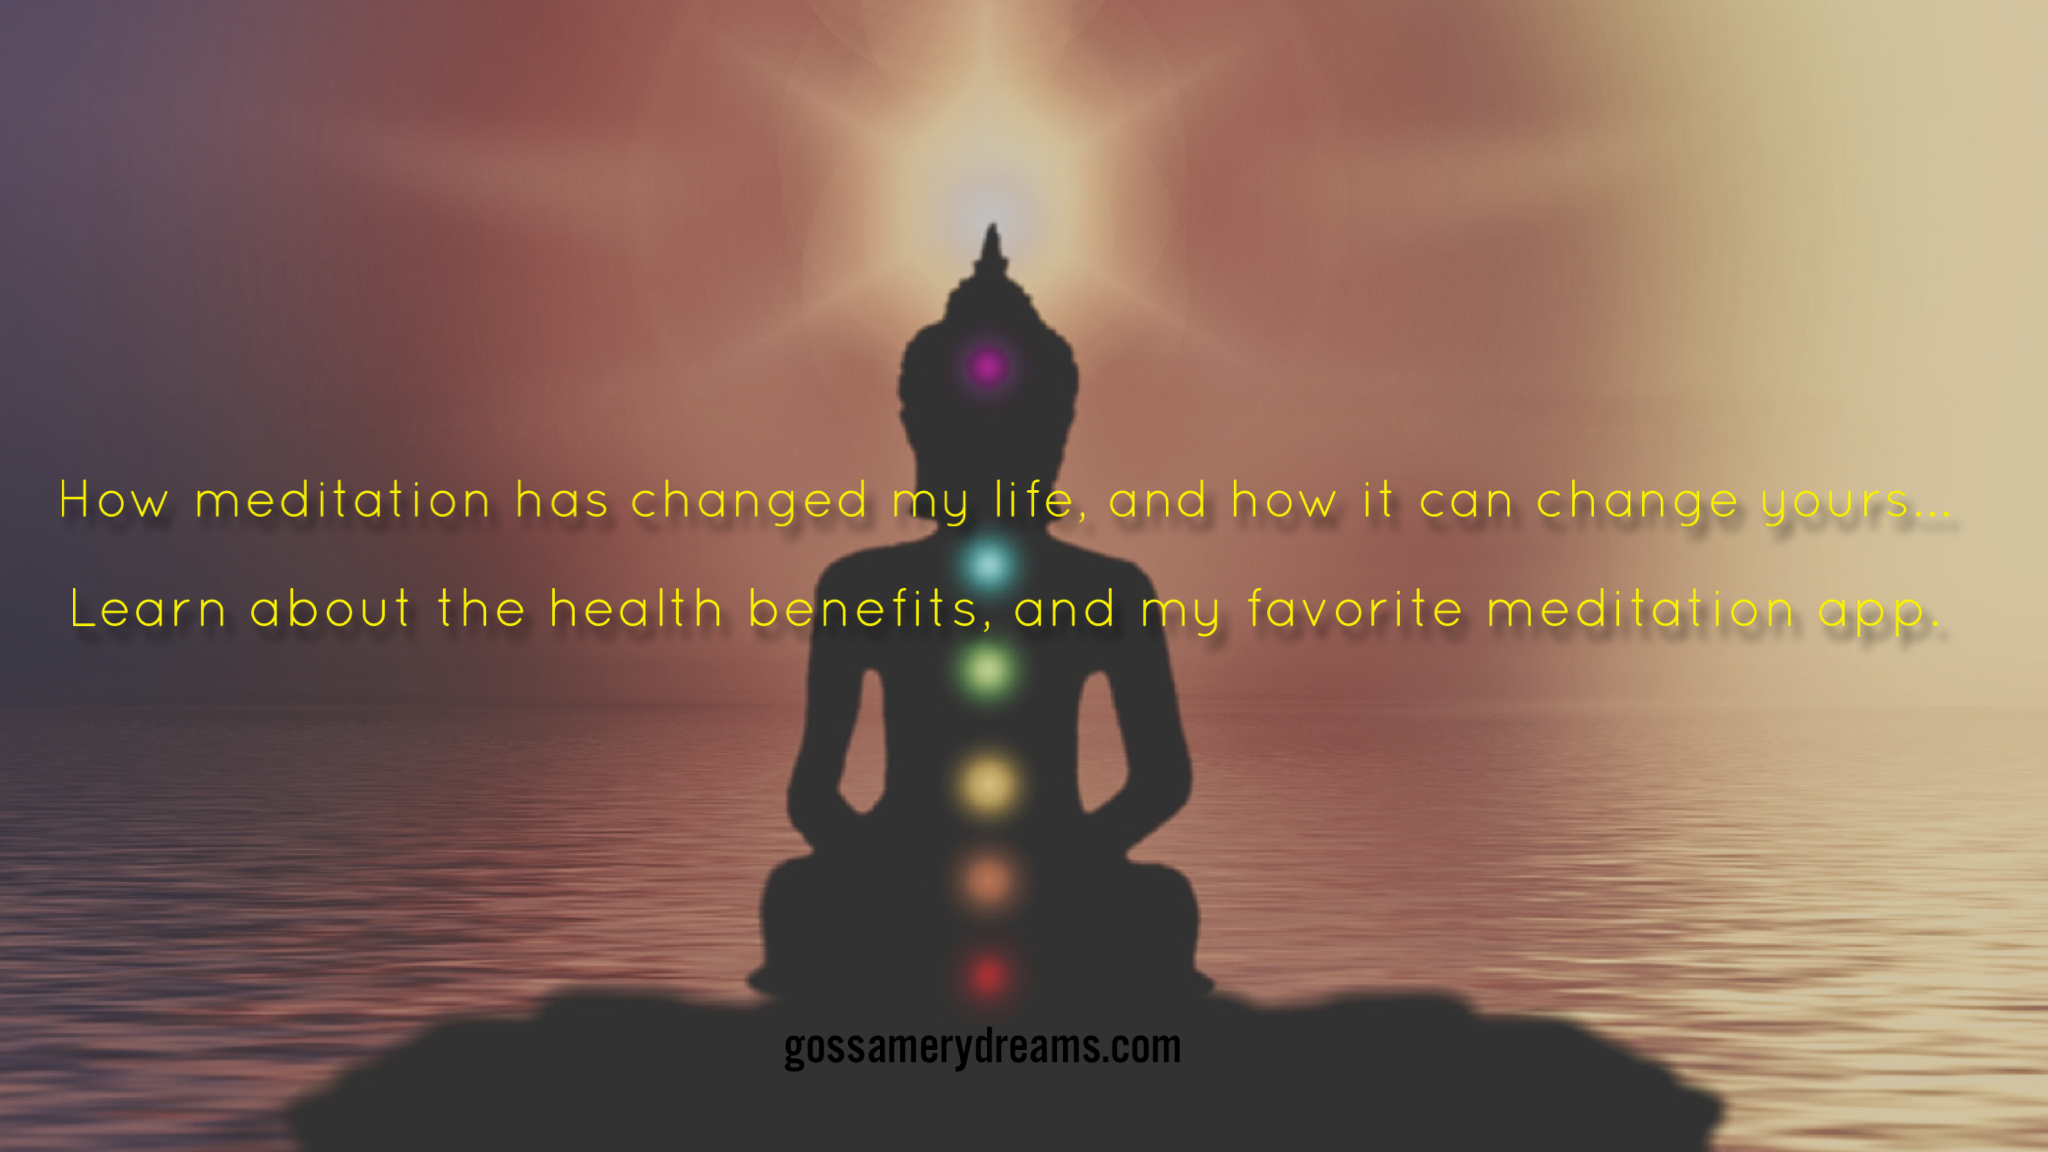 HOW MEDITATION CHANGED MY LIFE, AND HOW IT CAN CHANGE YOURS! LEARN ABOUT THE HEALTH BENEFITS, AND MY FAVORITE MEDITATION APP @www.gossamerydreams.com